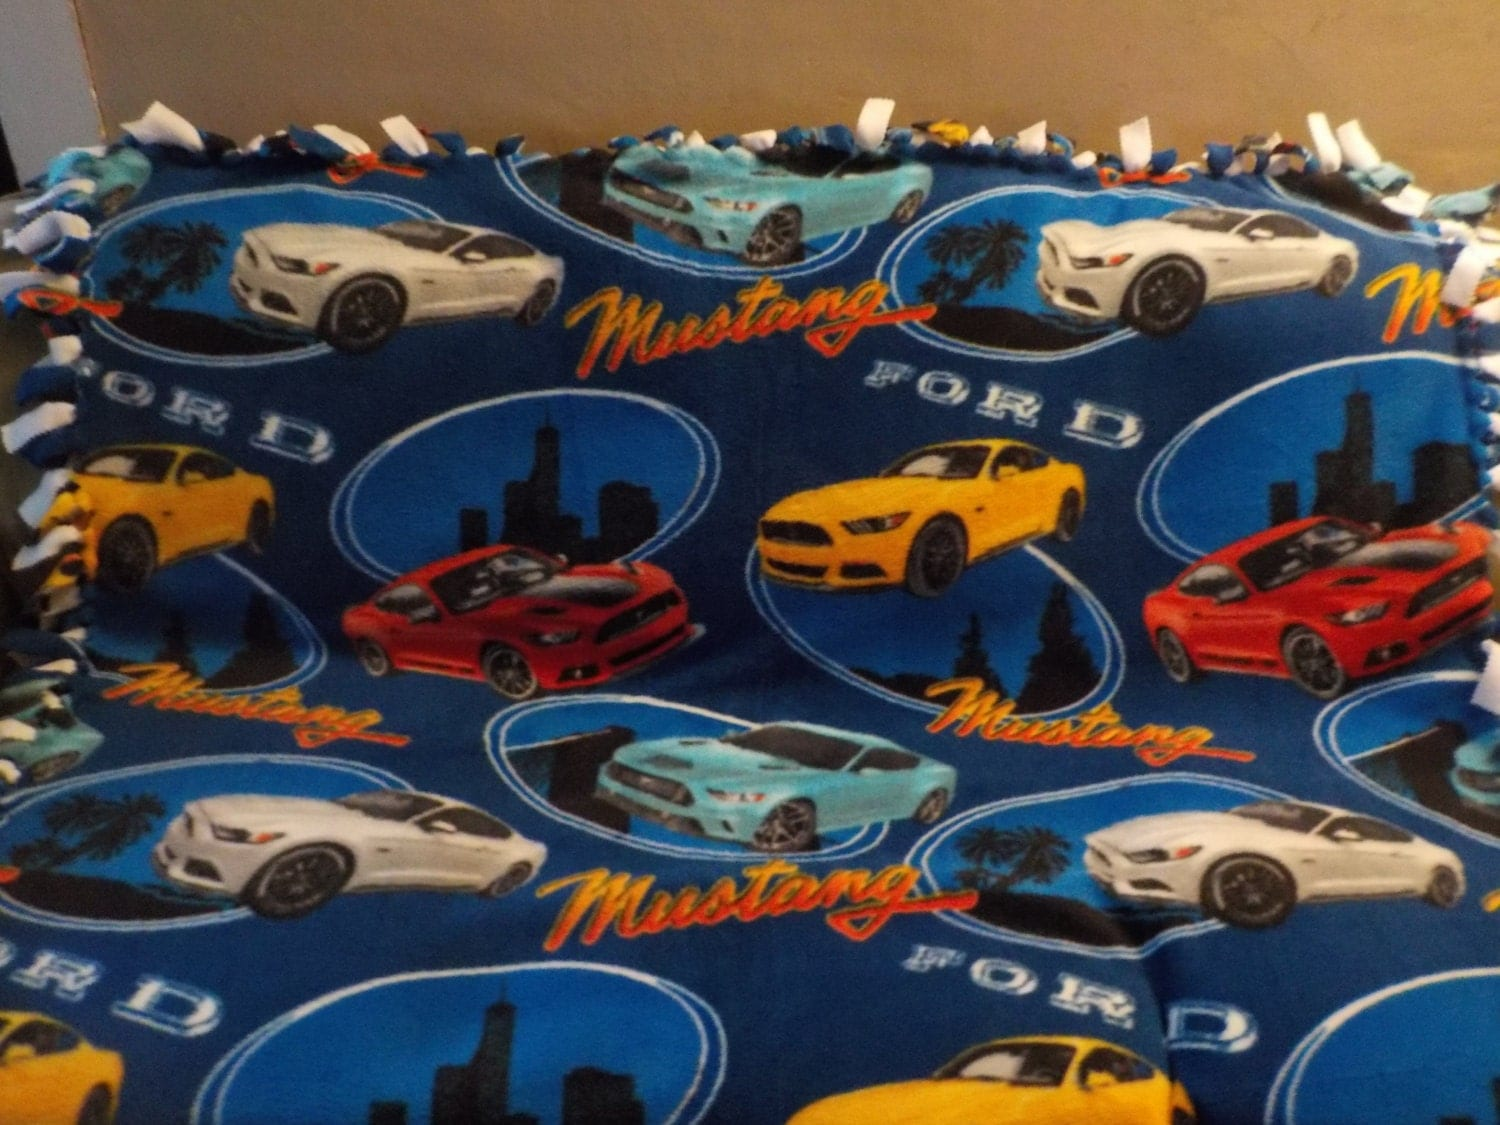 The ford mustang blanket is back under